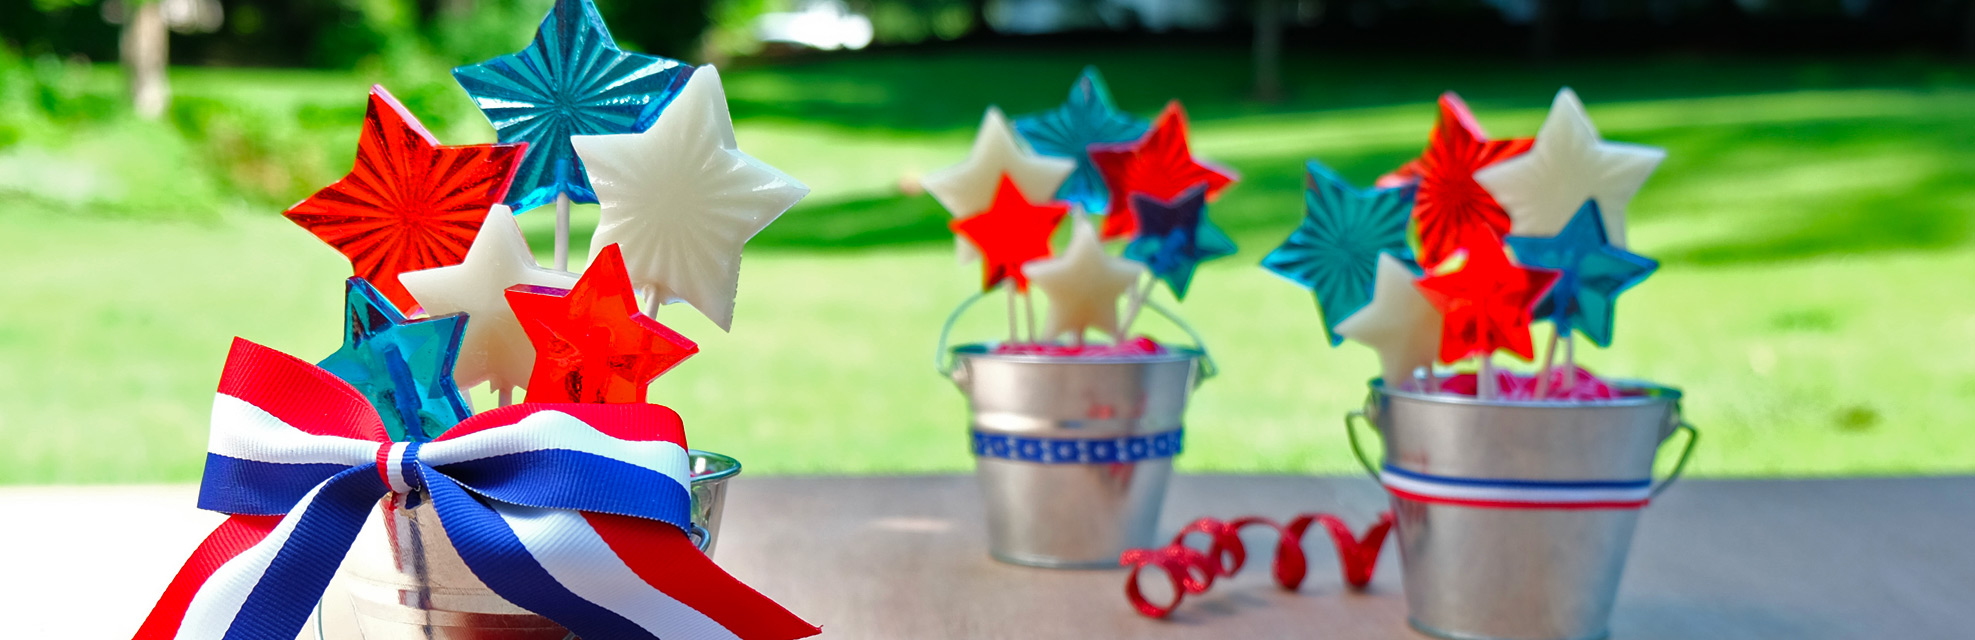 red, white, blue holiday recipes category image